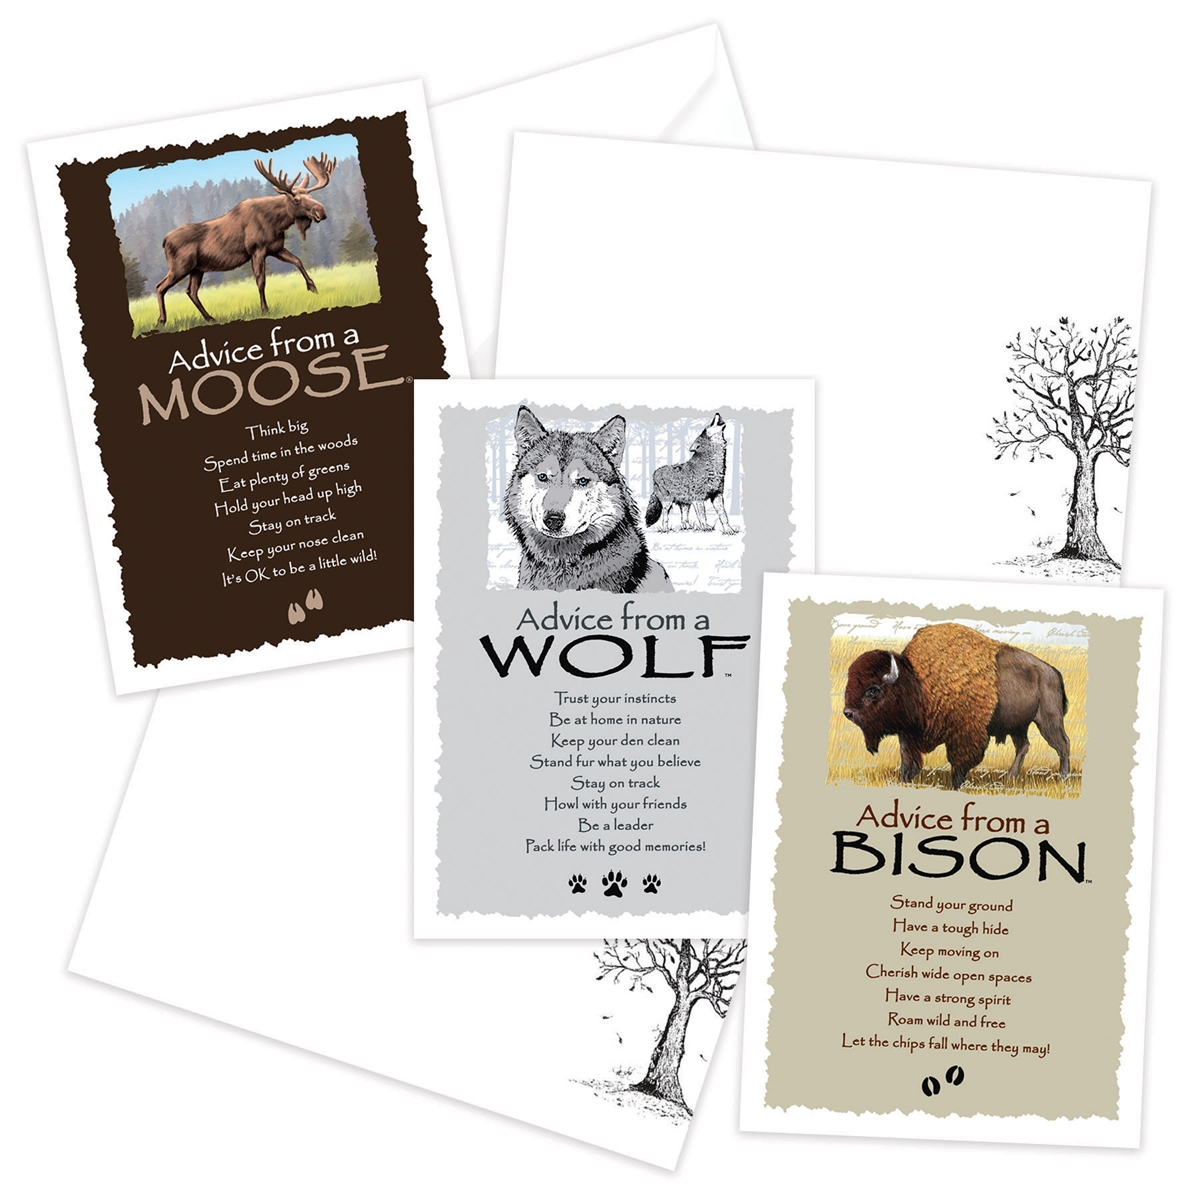 Advice from the Bison, Moose and Wolf Greeting Cards